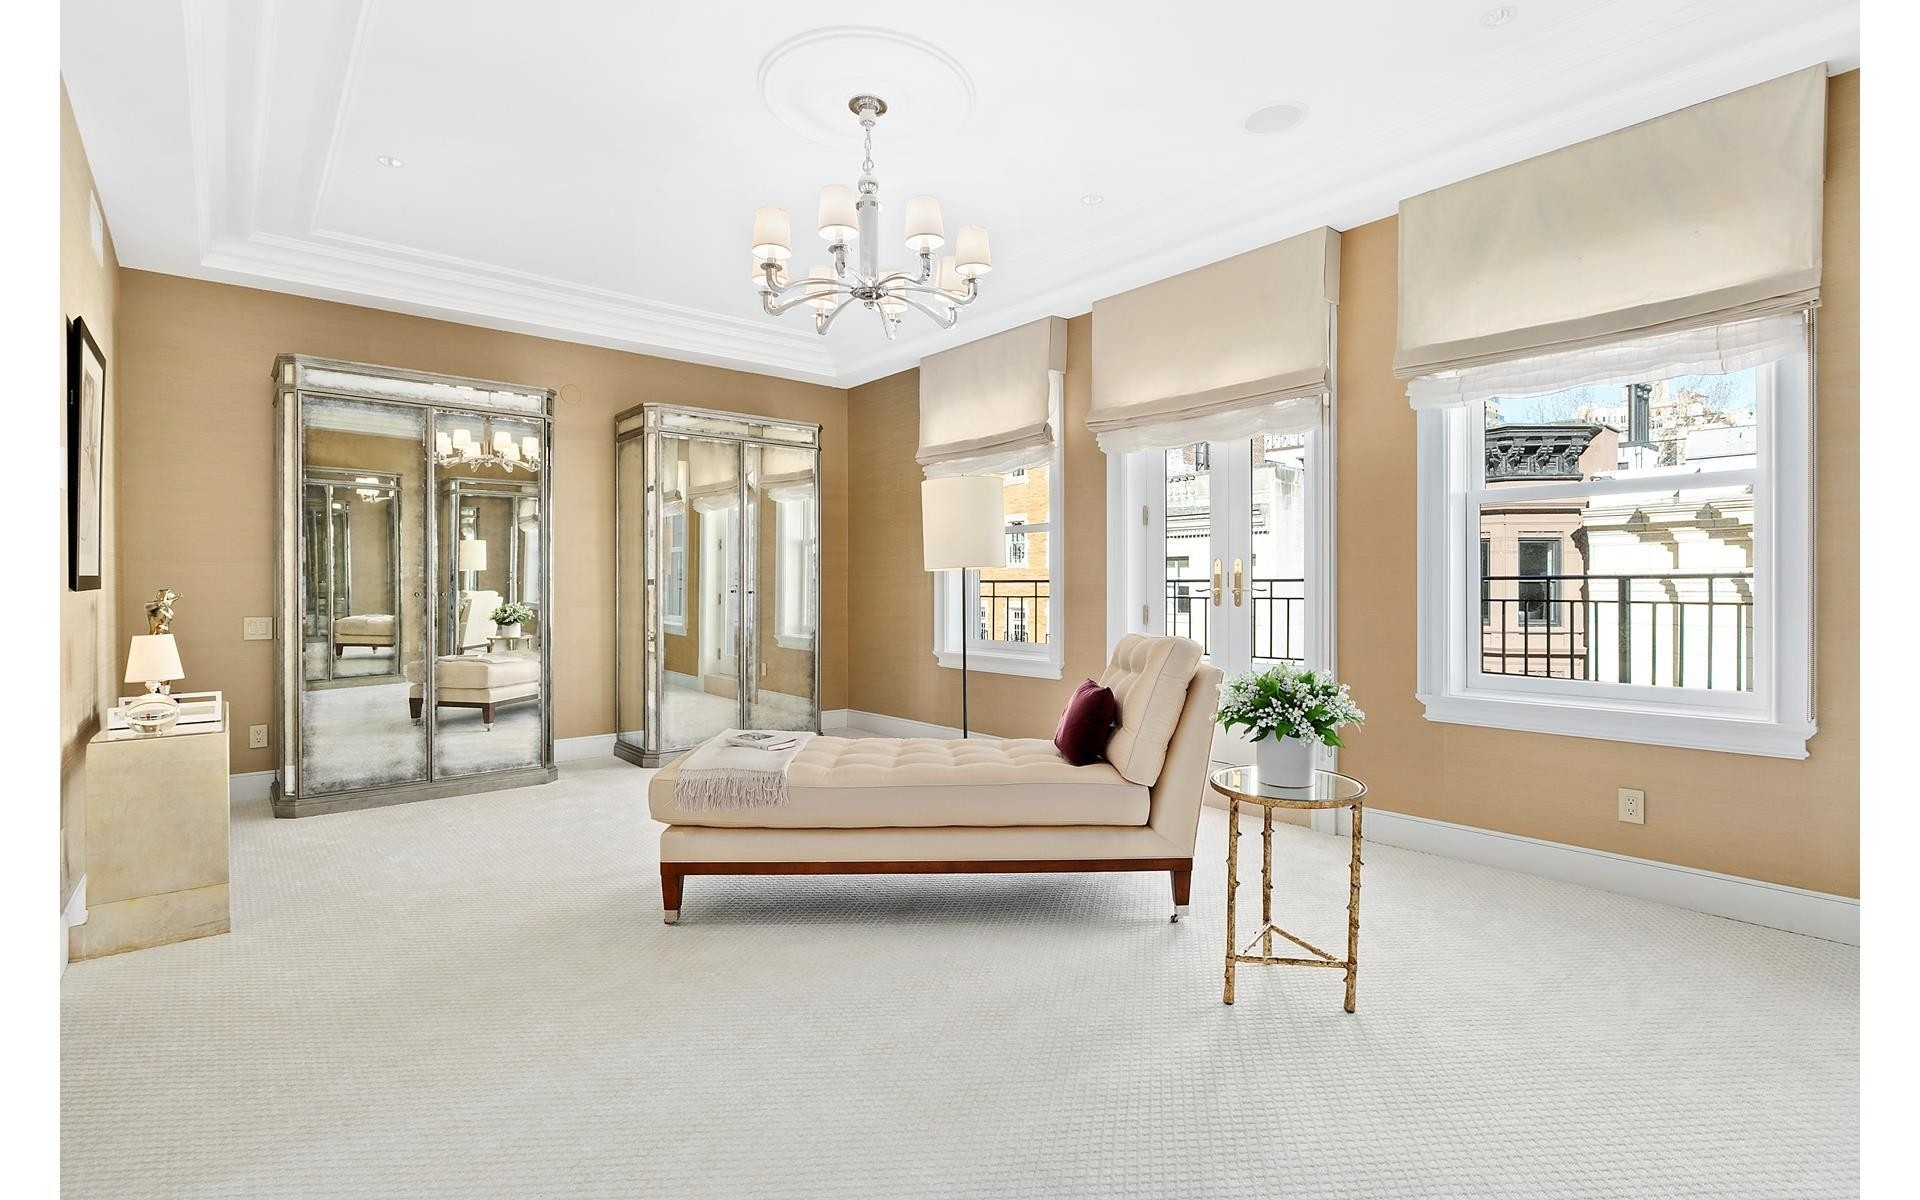 9. Single Family Townhouse for Sale at 12 E 63RD ST , TOWNHOUSE Lenox Hill, New York, NY 10065